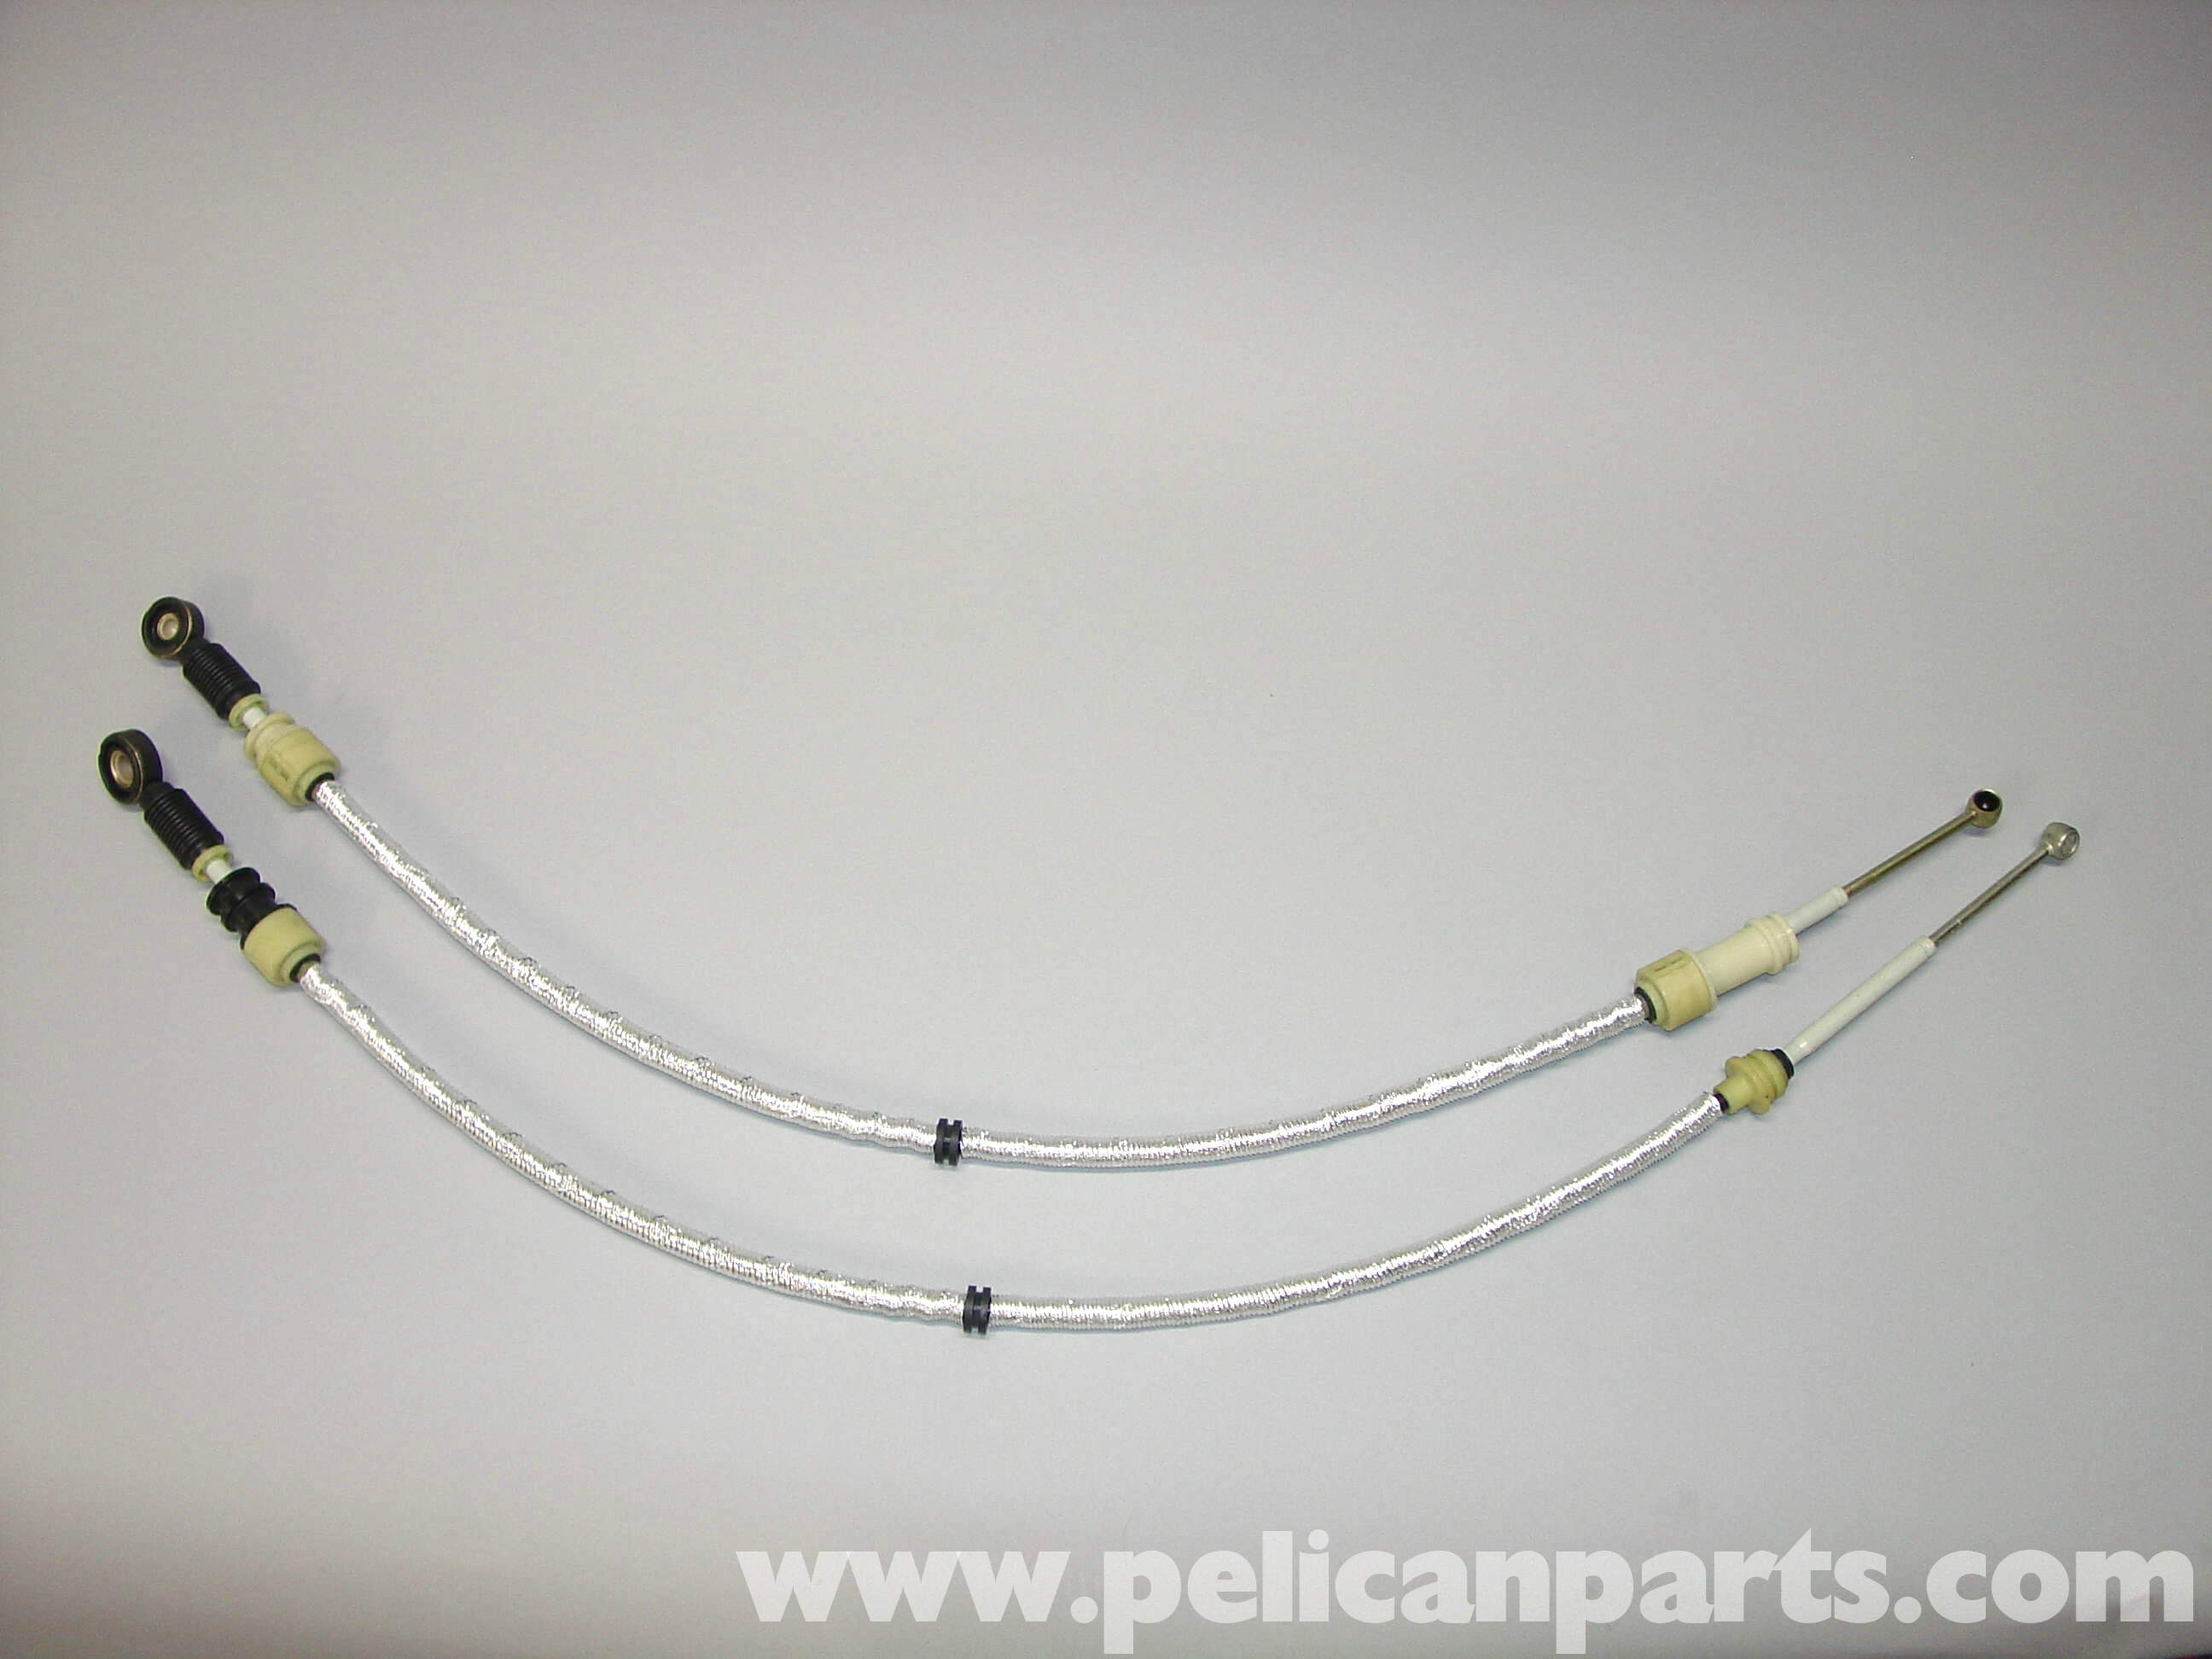 Pelican Technical Article Shift Cable Replacement R53 Mini Trans Wiring Diagram 2003 Cooper Large Image Extra